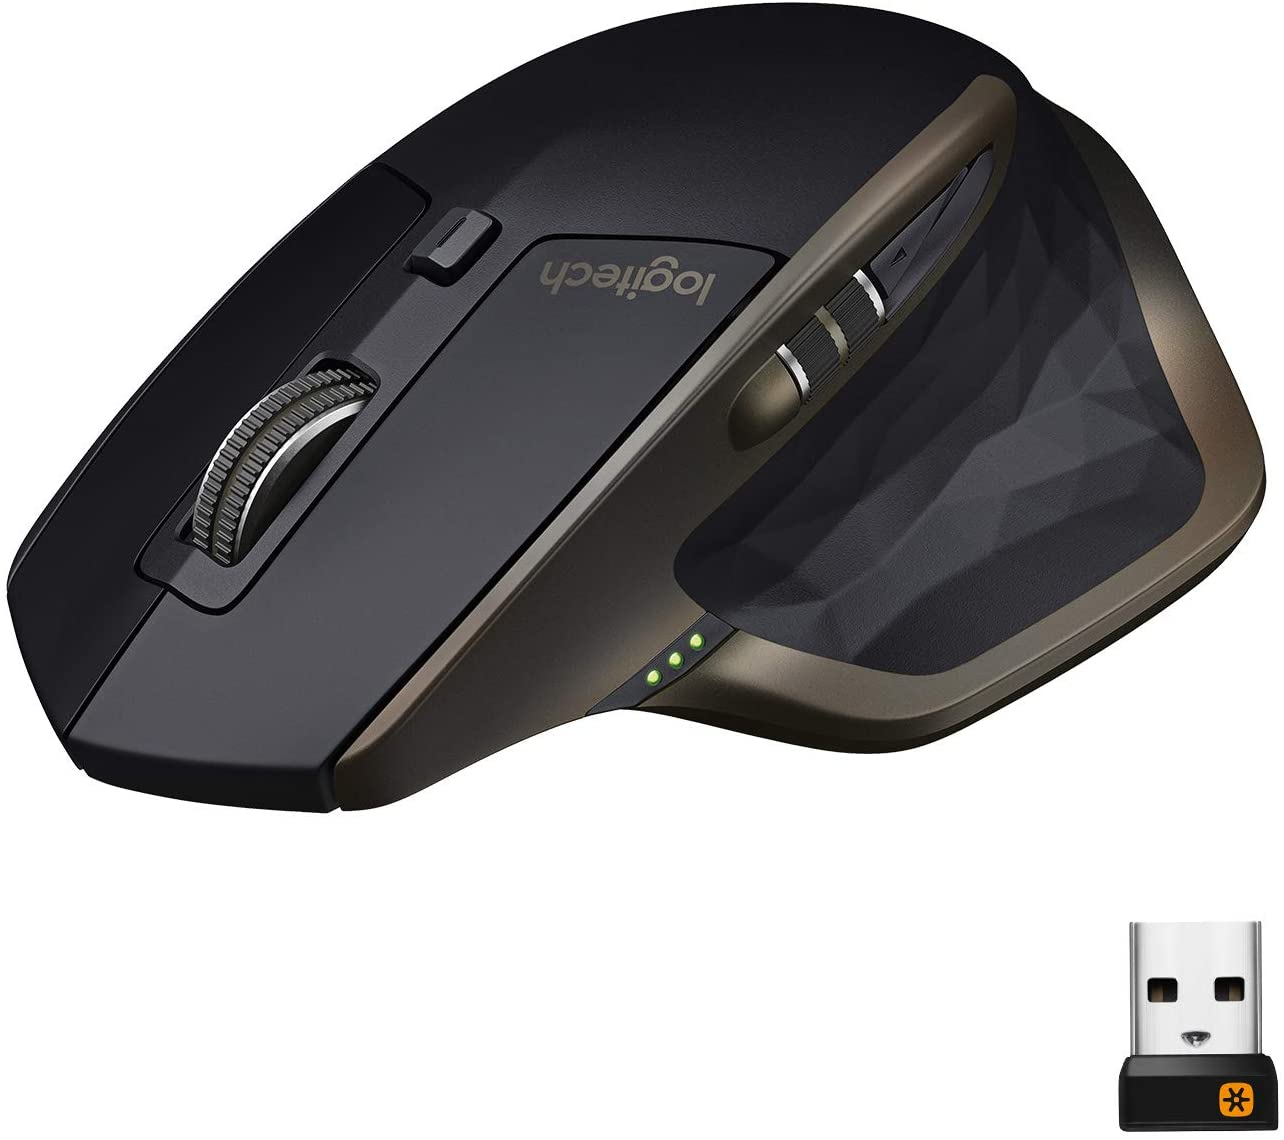 Logitech MX Master Wireless Mouse – High-precision Sensor, Speed-Adaptive Scroll Wheel, Easy-Switch up to 3 Devices - Meteorite Black: Computers & Accessories